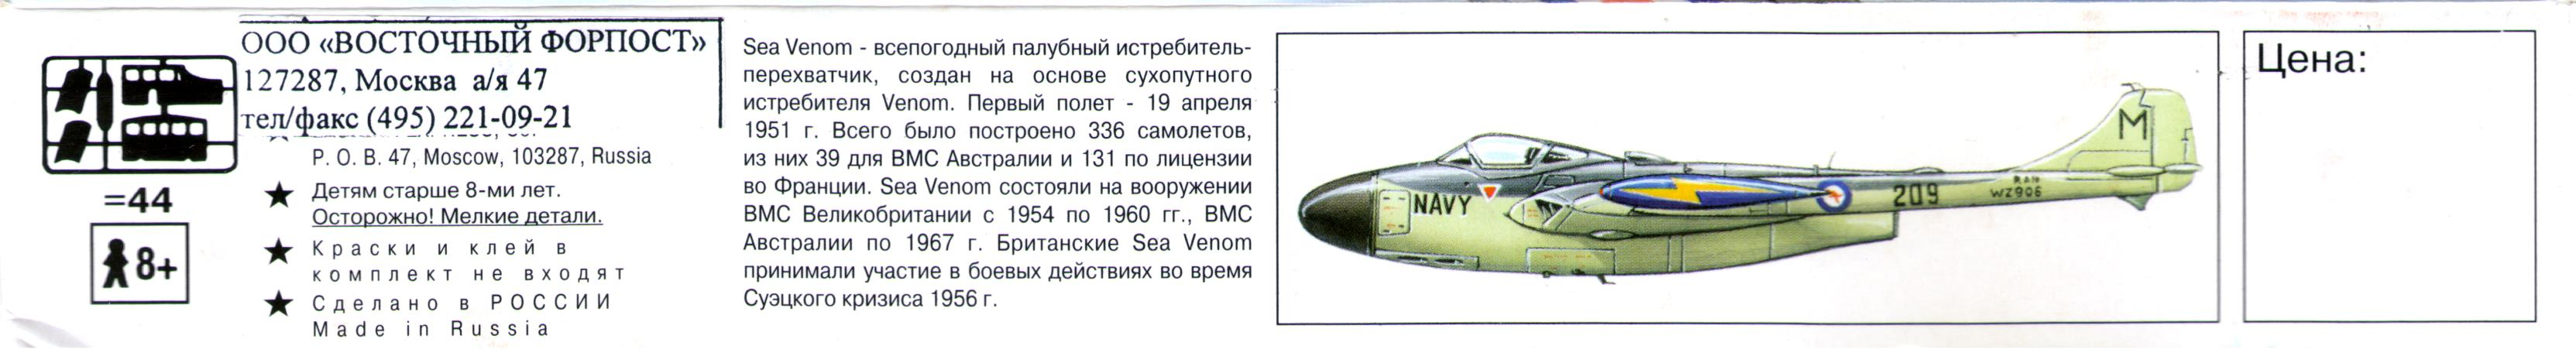 Верх коробки Eastern Express 72225 Navy Fighter DH112 Sea Venom